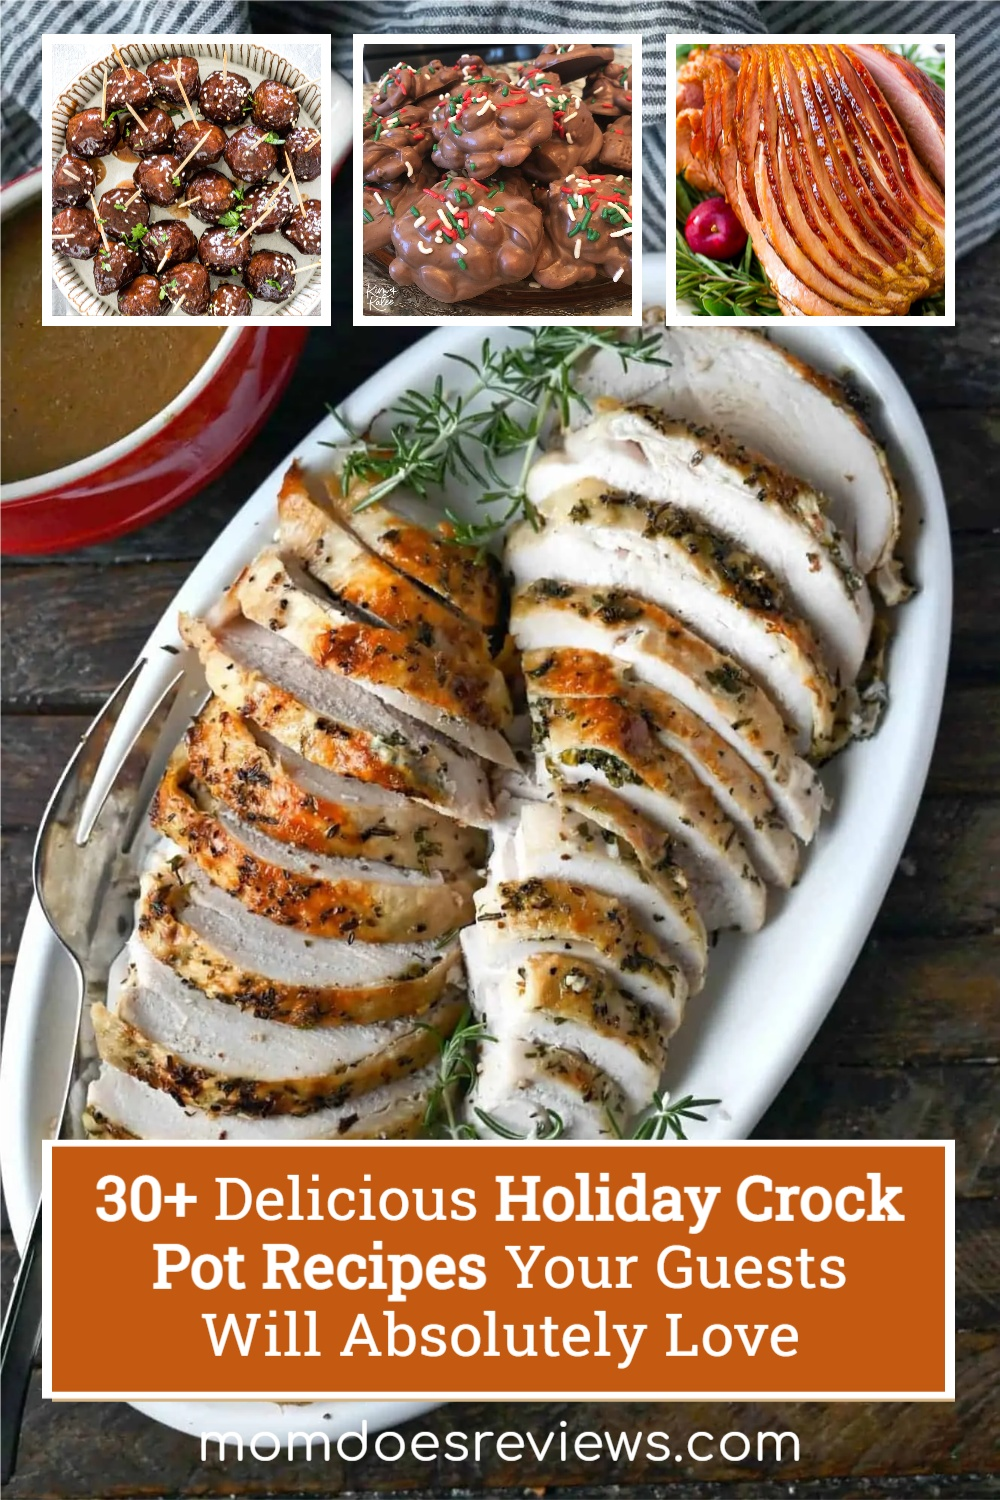 30+ Delicious Holiday Crock Pot Recipes Your Guests Will Absolutely Love